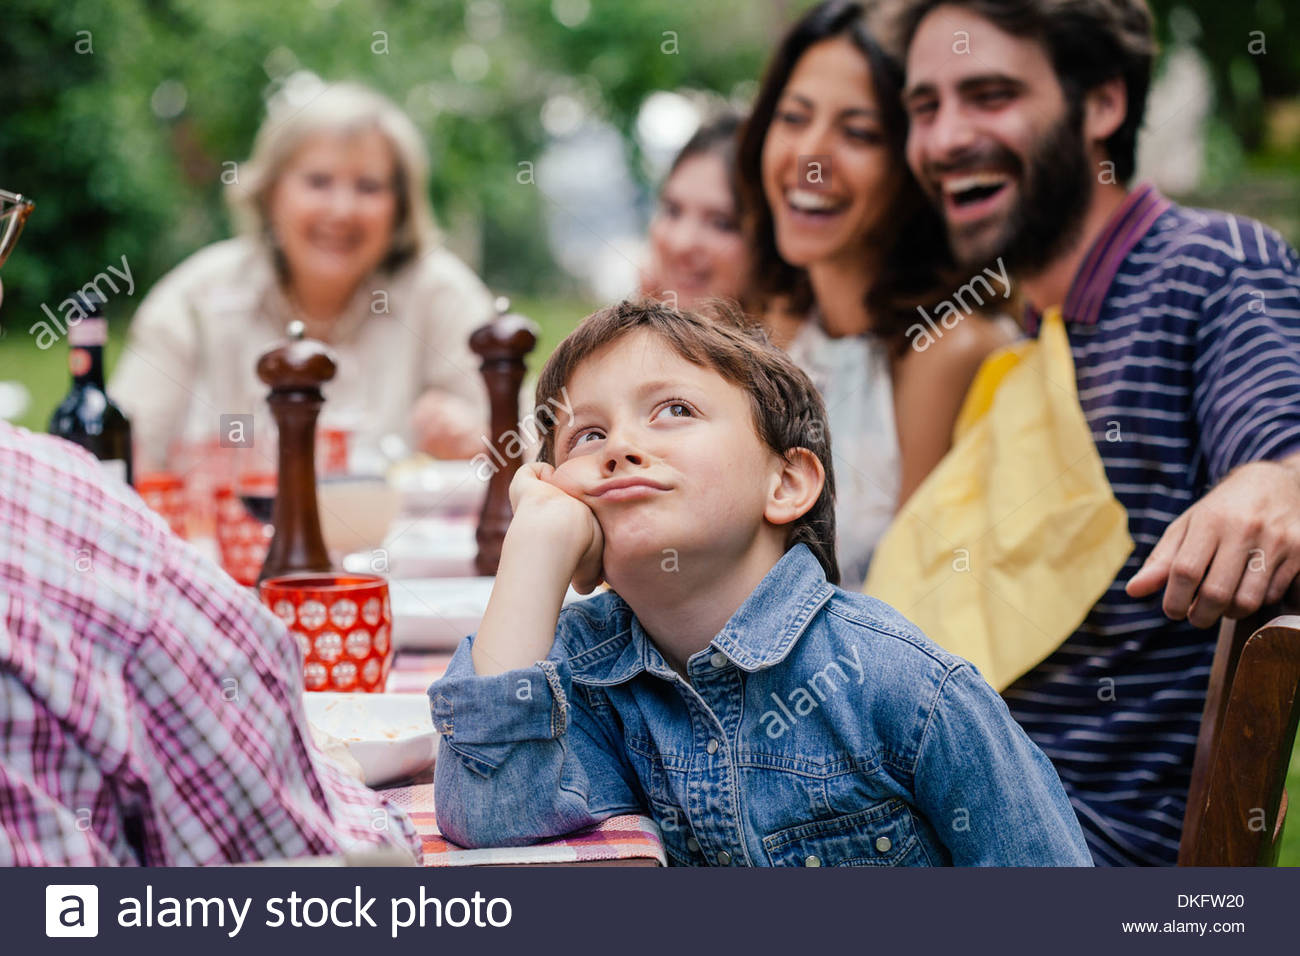 Bored boy at outdoor family meal - Stock Image